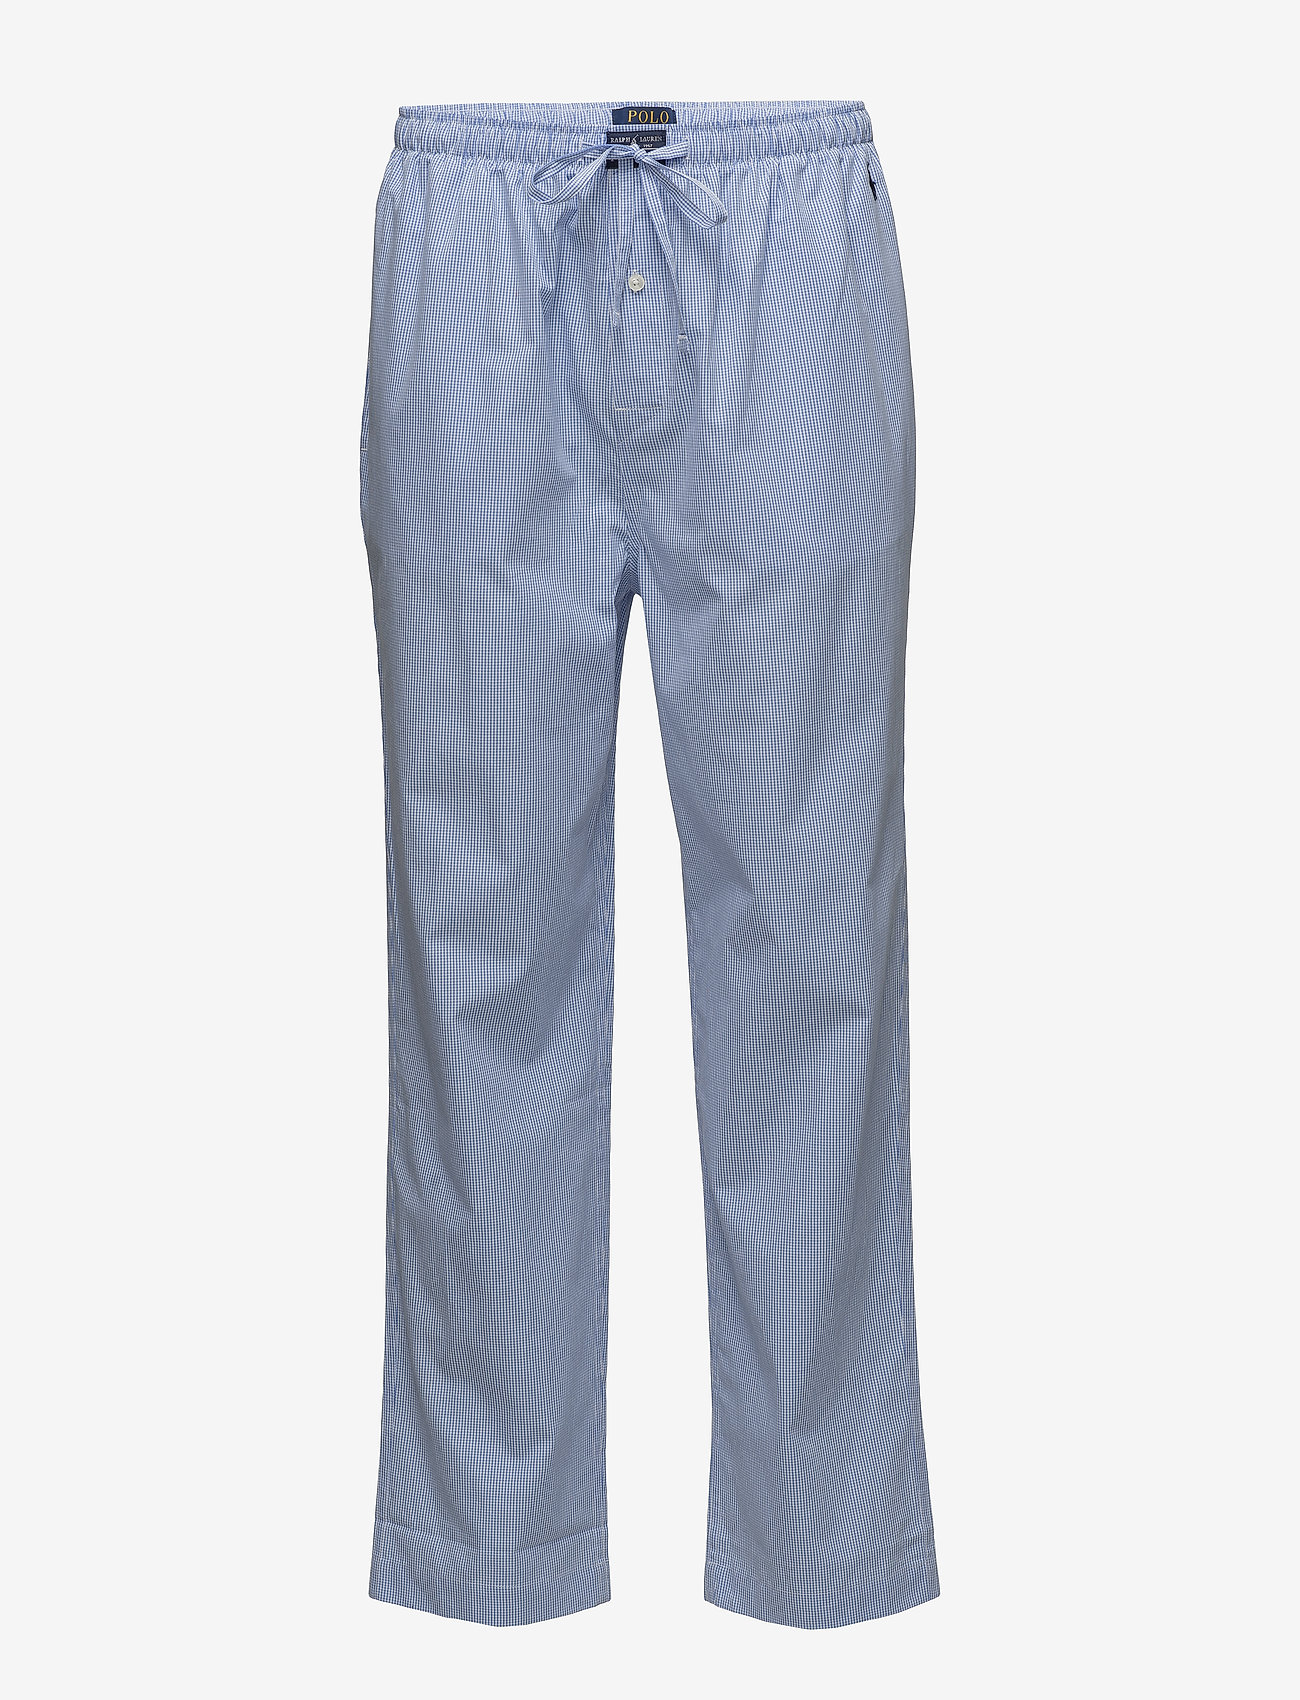 Polo Ralph Lauren Underwear - PYJAMA LONG PANT - bottoms - lt blue mini gi - 0